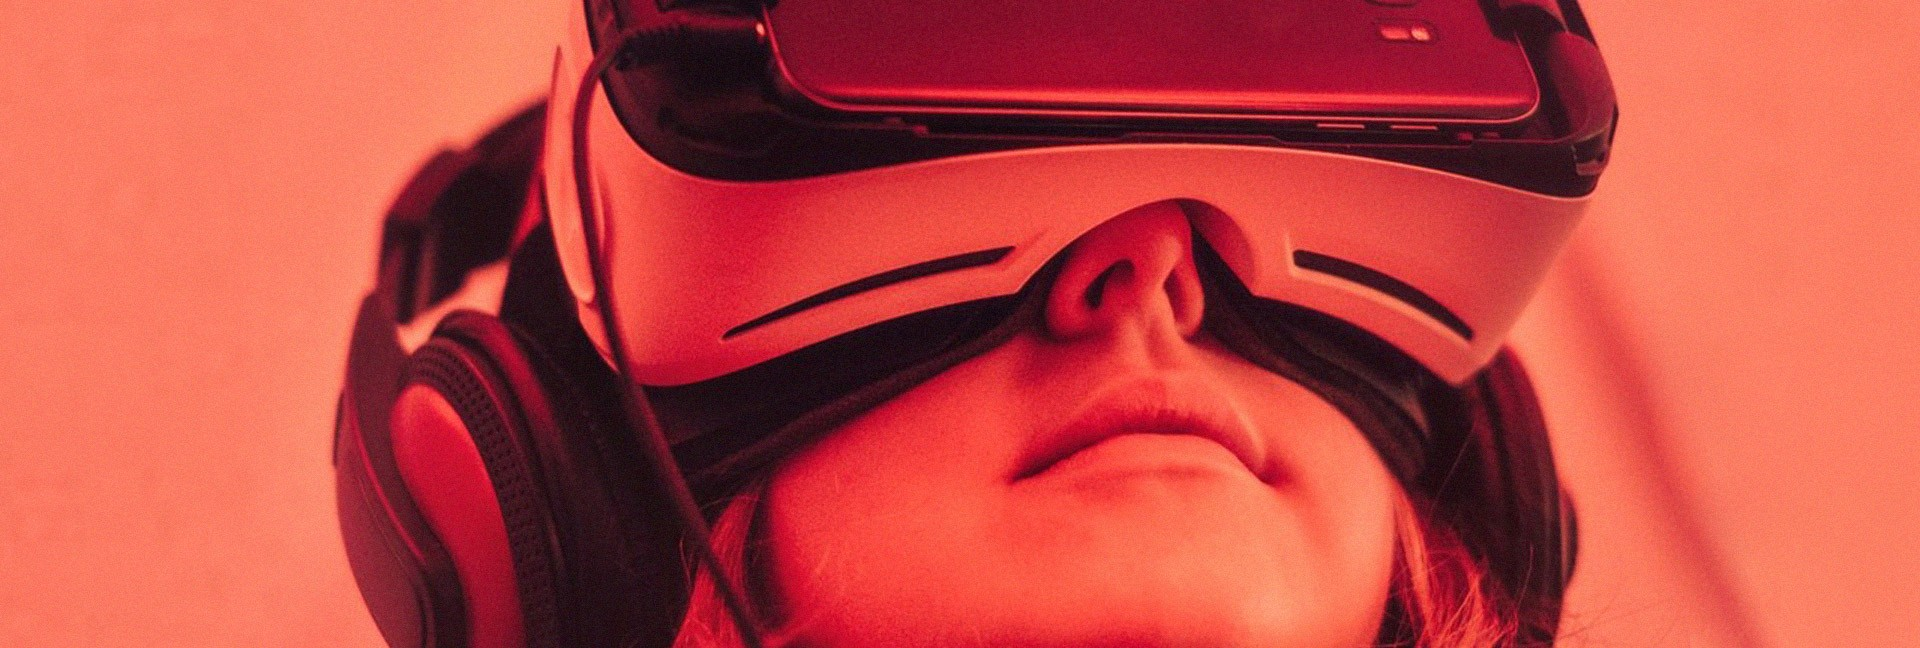 The Future Is Here: Virtual Travel Becomes More of a Reality